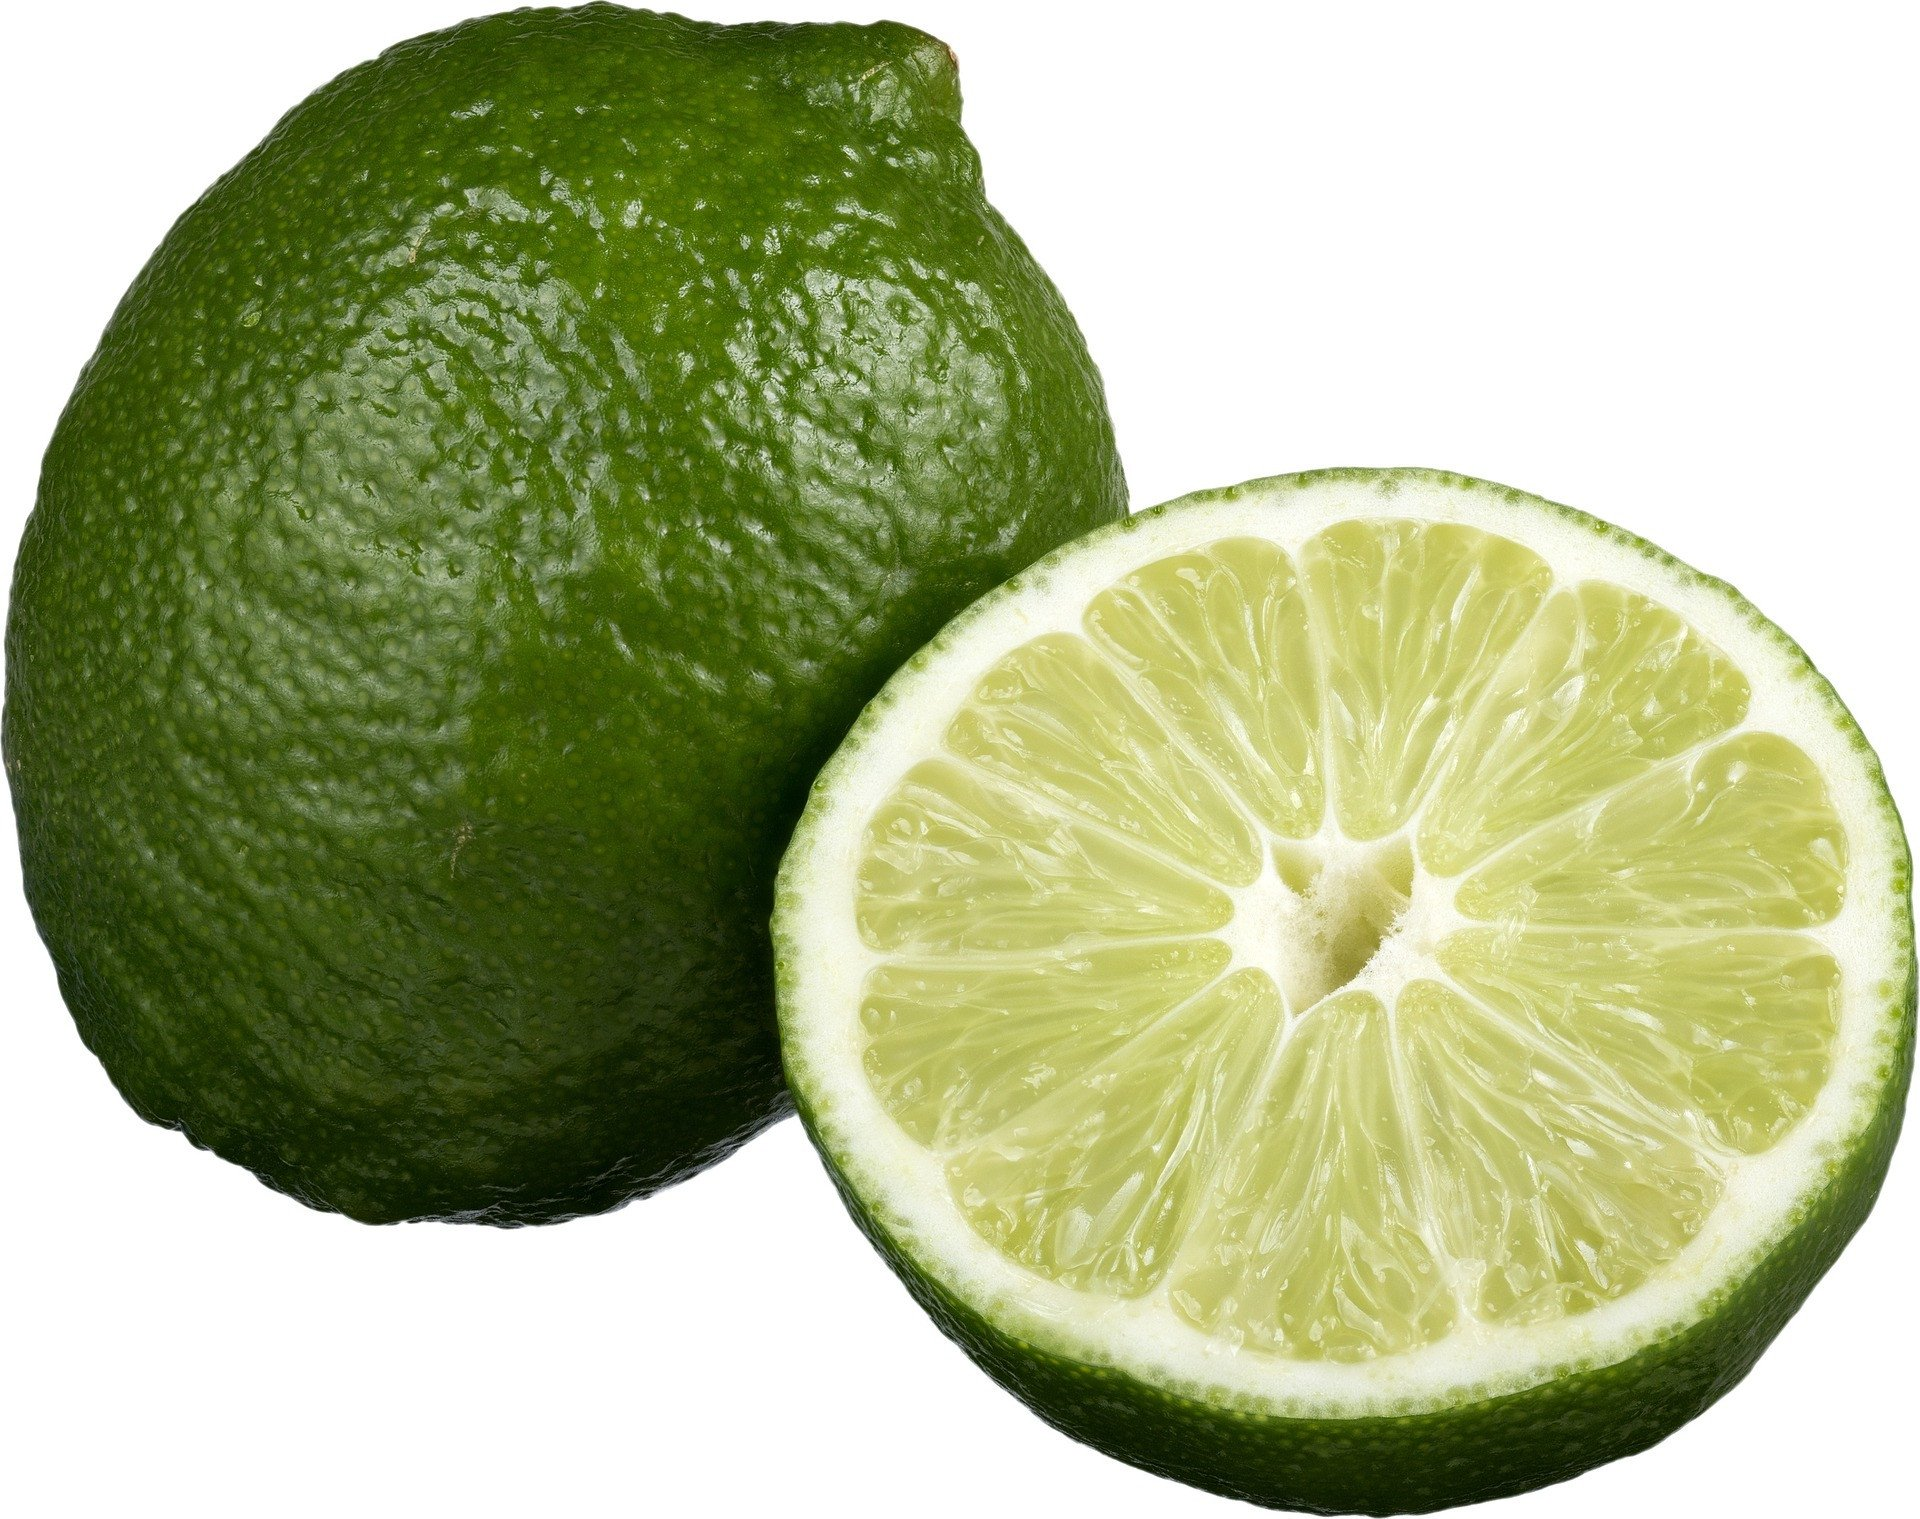 Can Cure Cough, Here Are 8 Benefits of Lime You Need to Know - JPNN.com